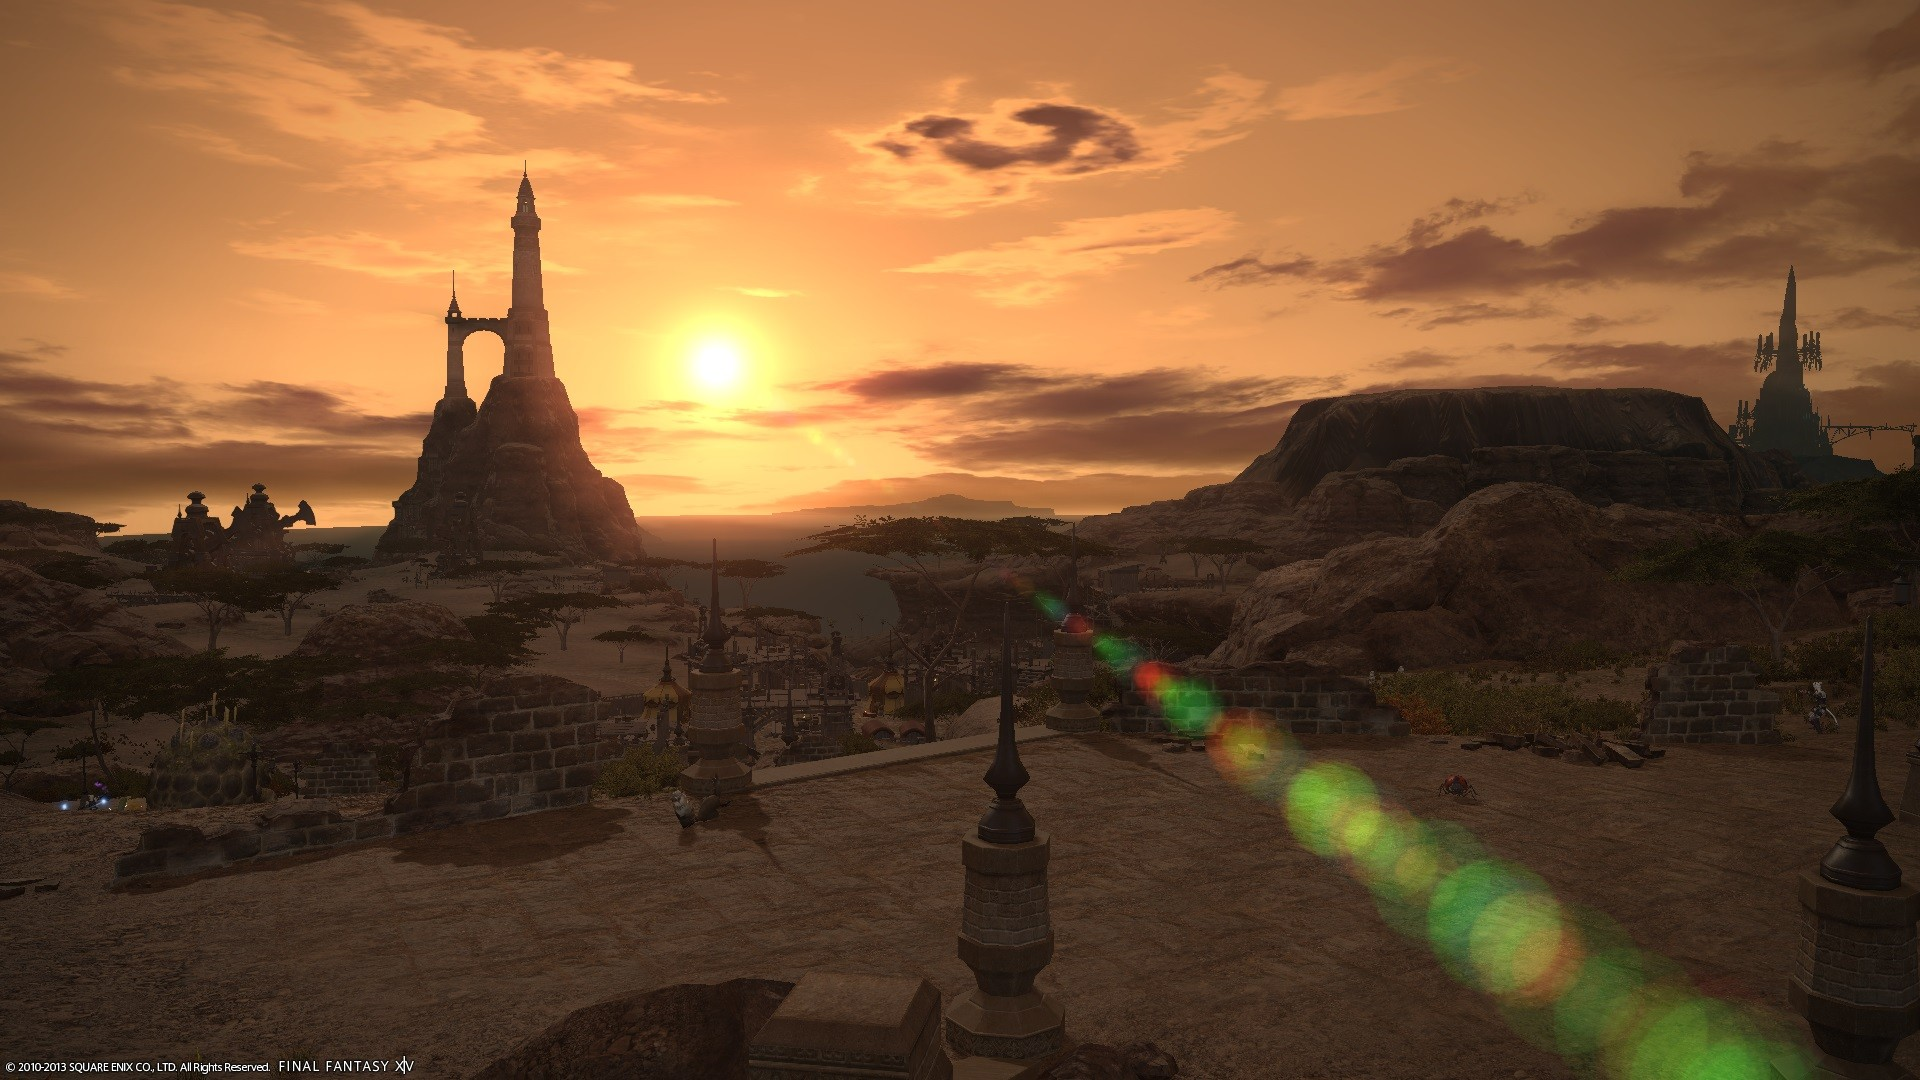 Final Fantasy XIV: A Realm Reborn - Nice Sunset and awesome GFX